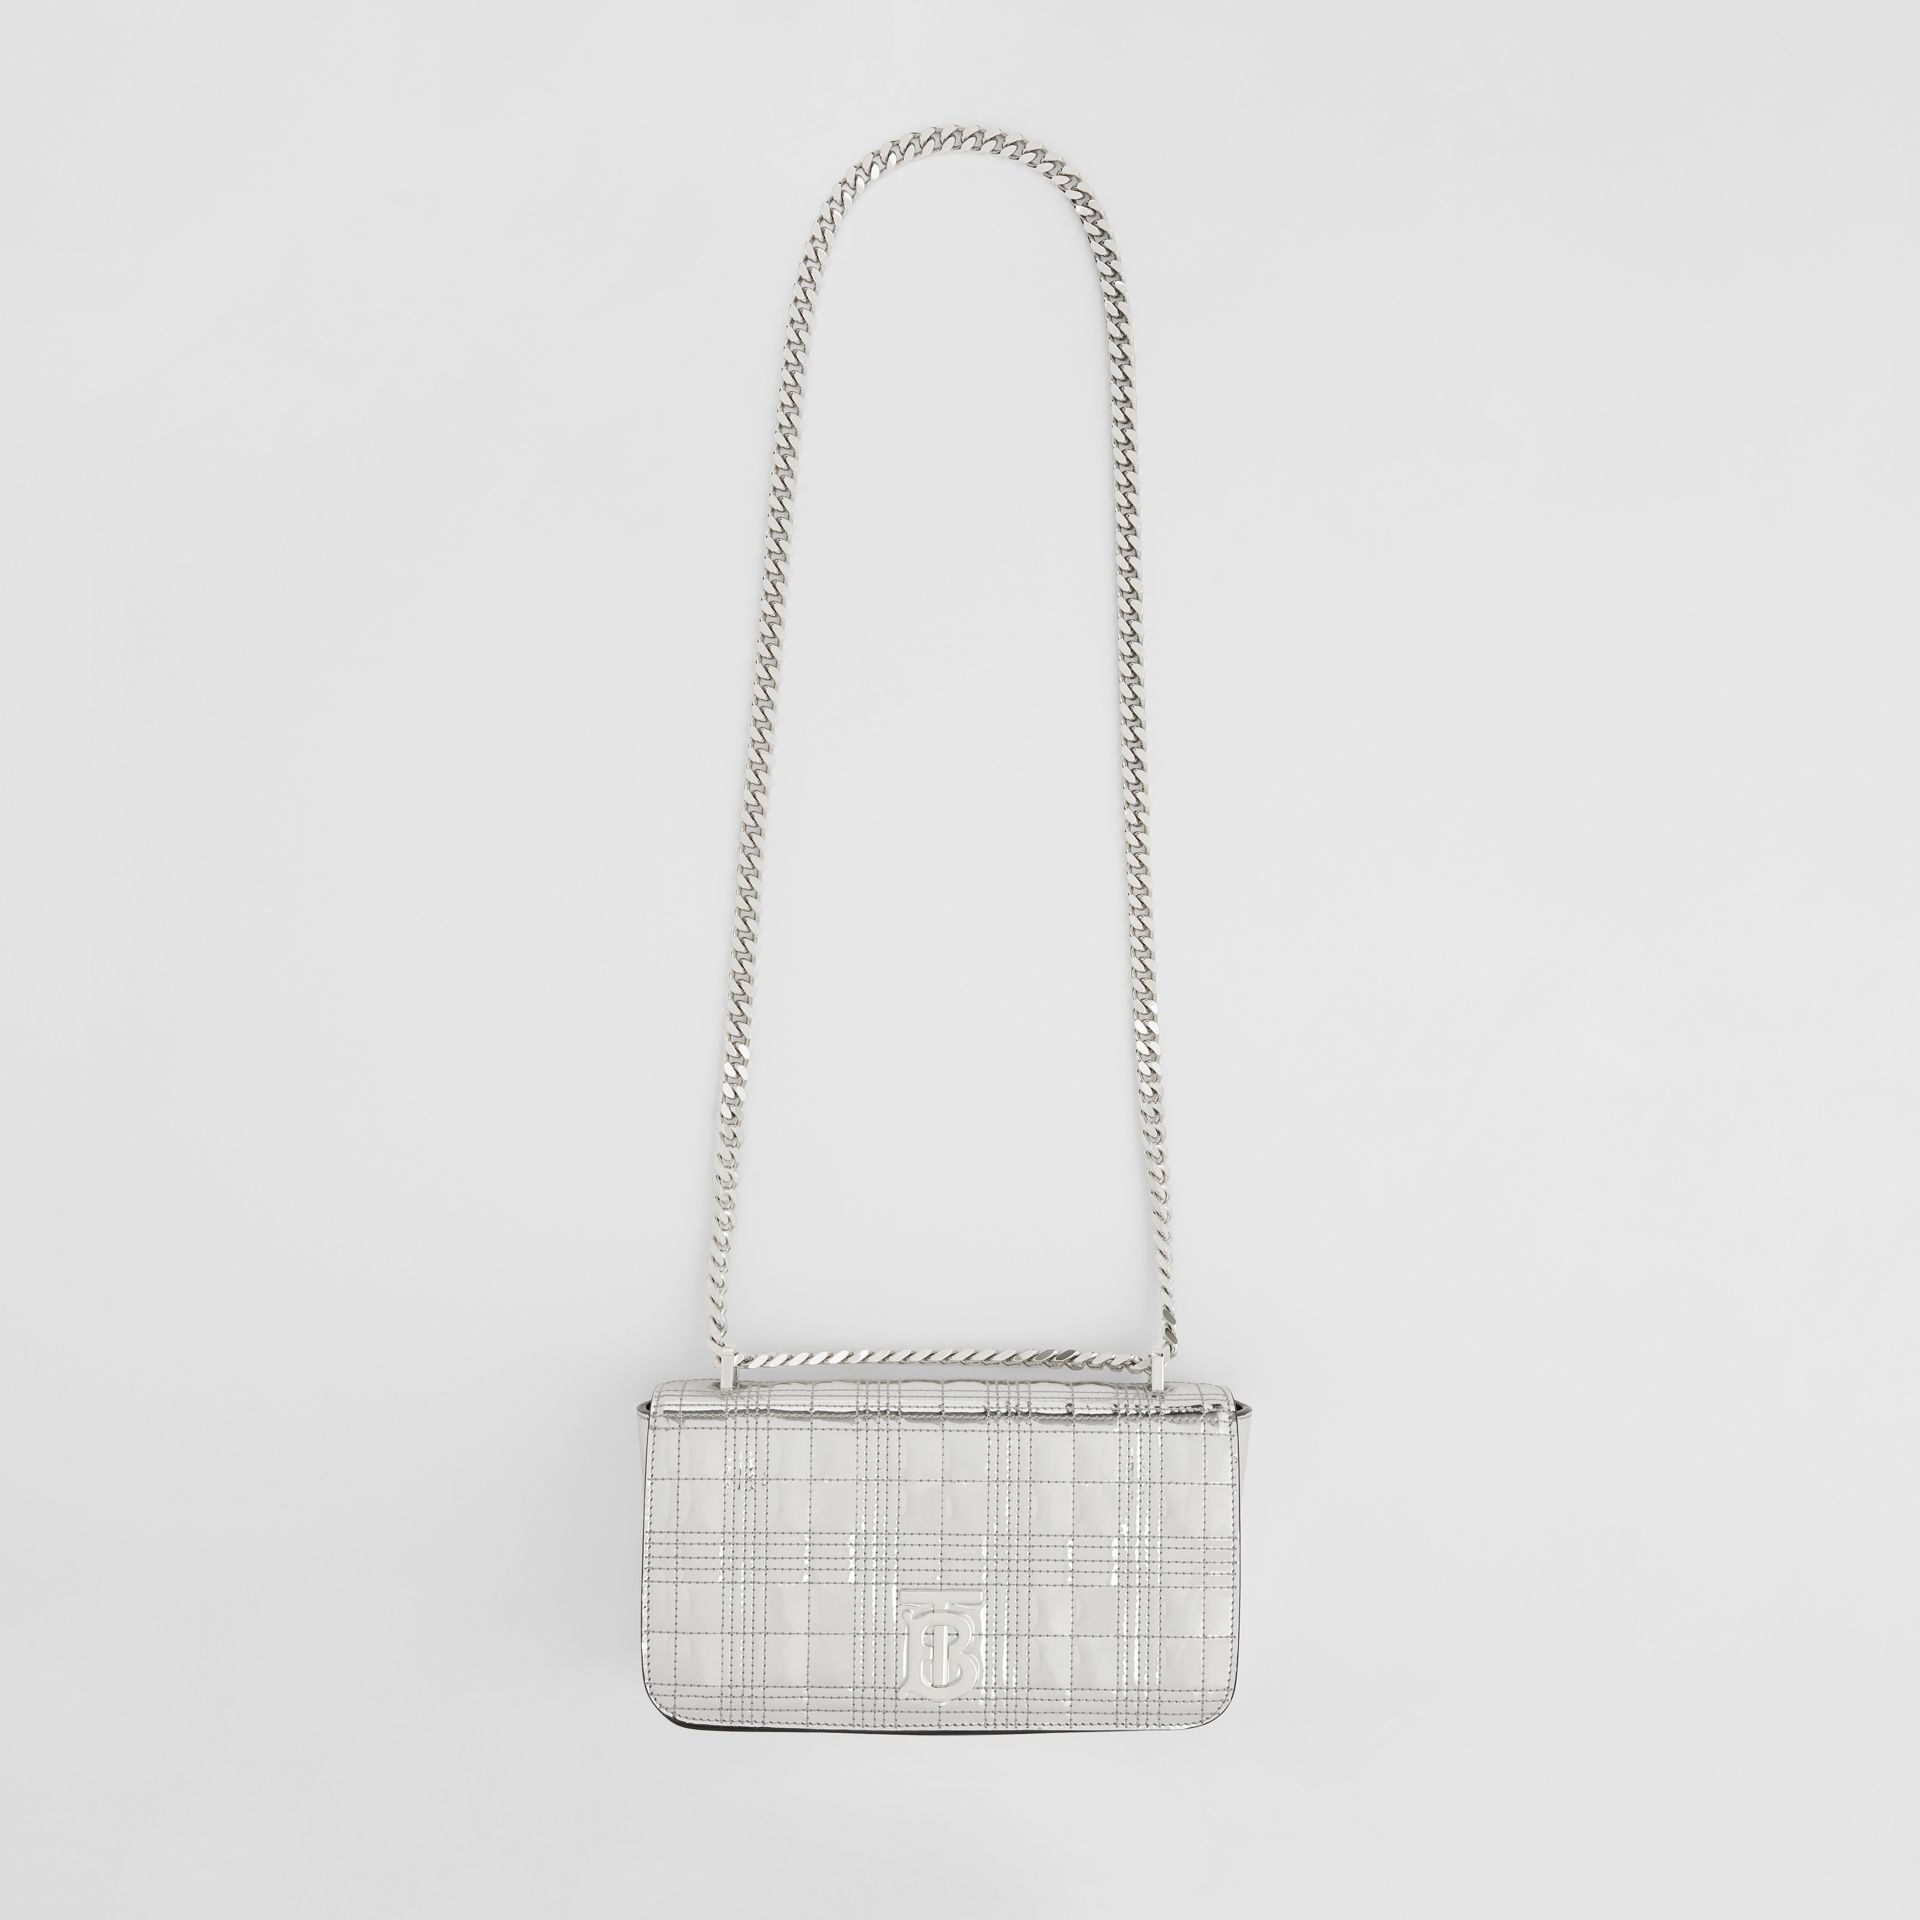 Small Quilted Metallic Leather Lola Bag in Silver - Women | Burberry United Kingdom - gallery image 2